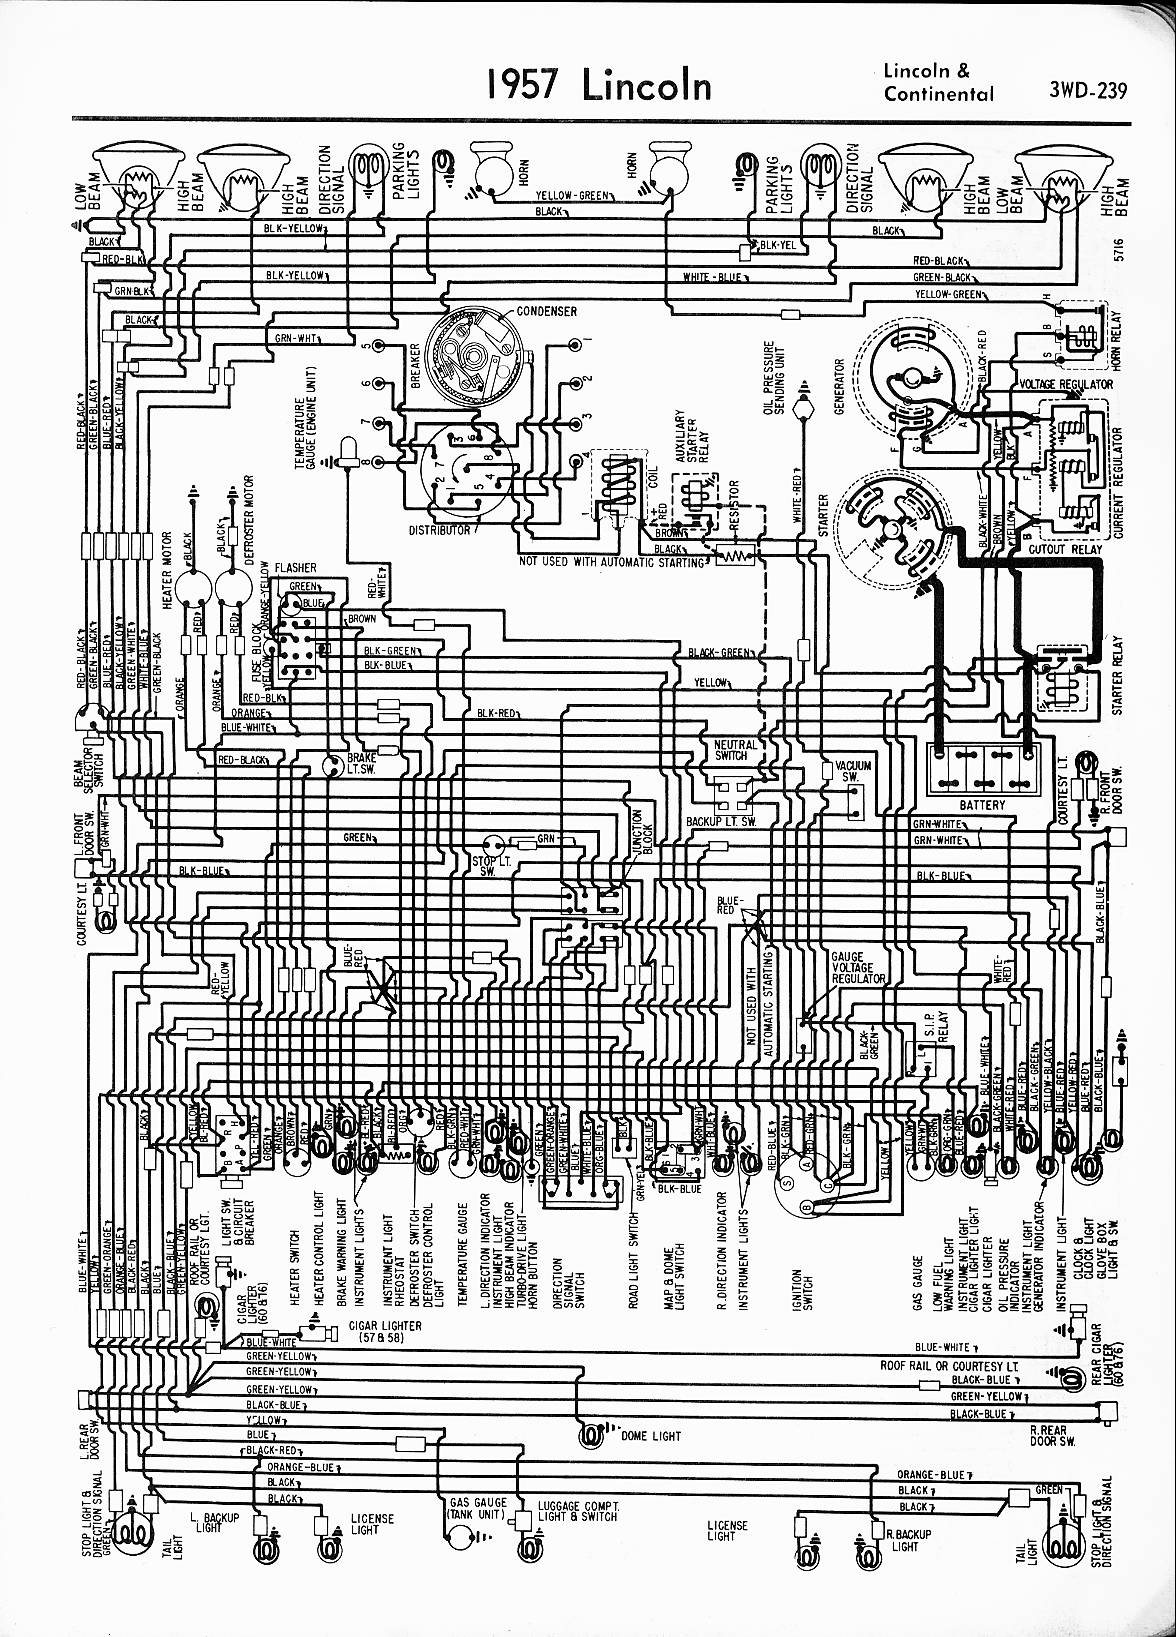 2000 Lincoln Ls Fuel Pump Relay Fuse Box Diagram Wiring Library Navigator Diagrams 1957 1965 Rh Oldcarmanualproject Com Dc 600 K870